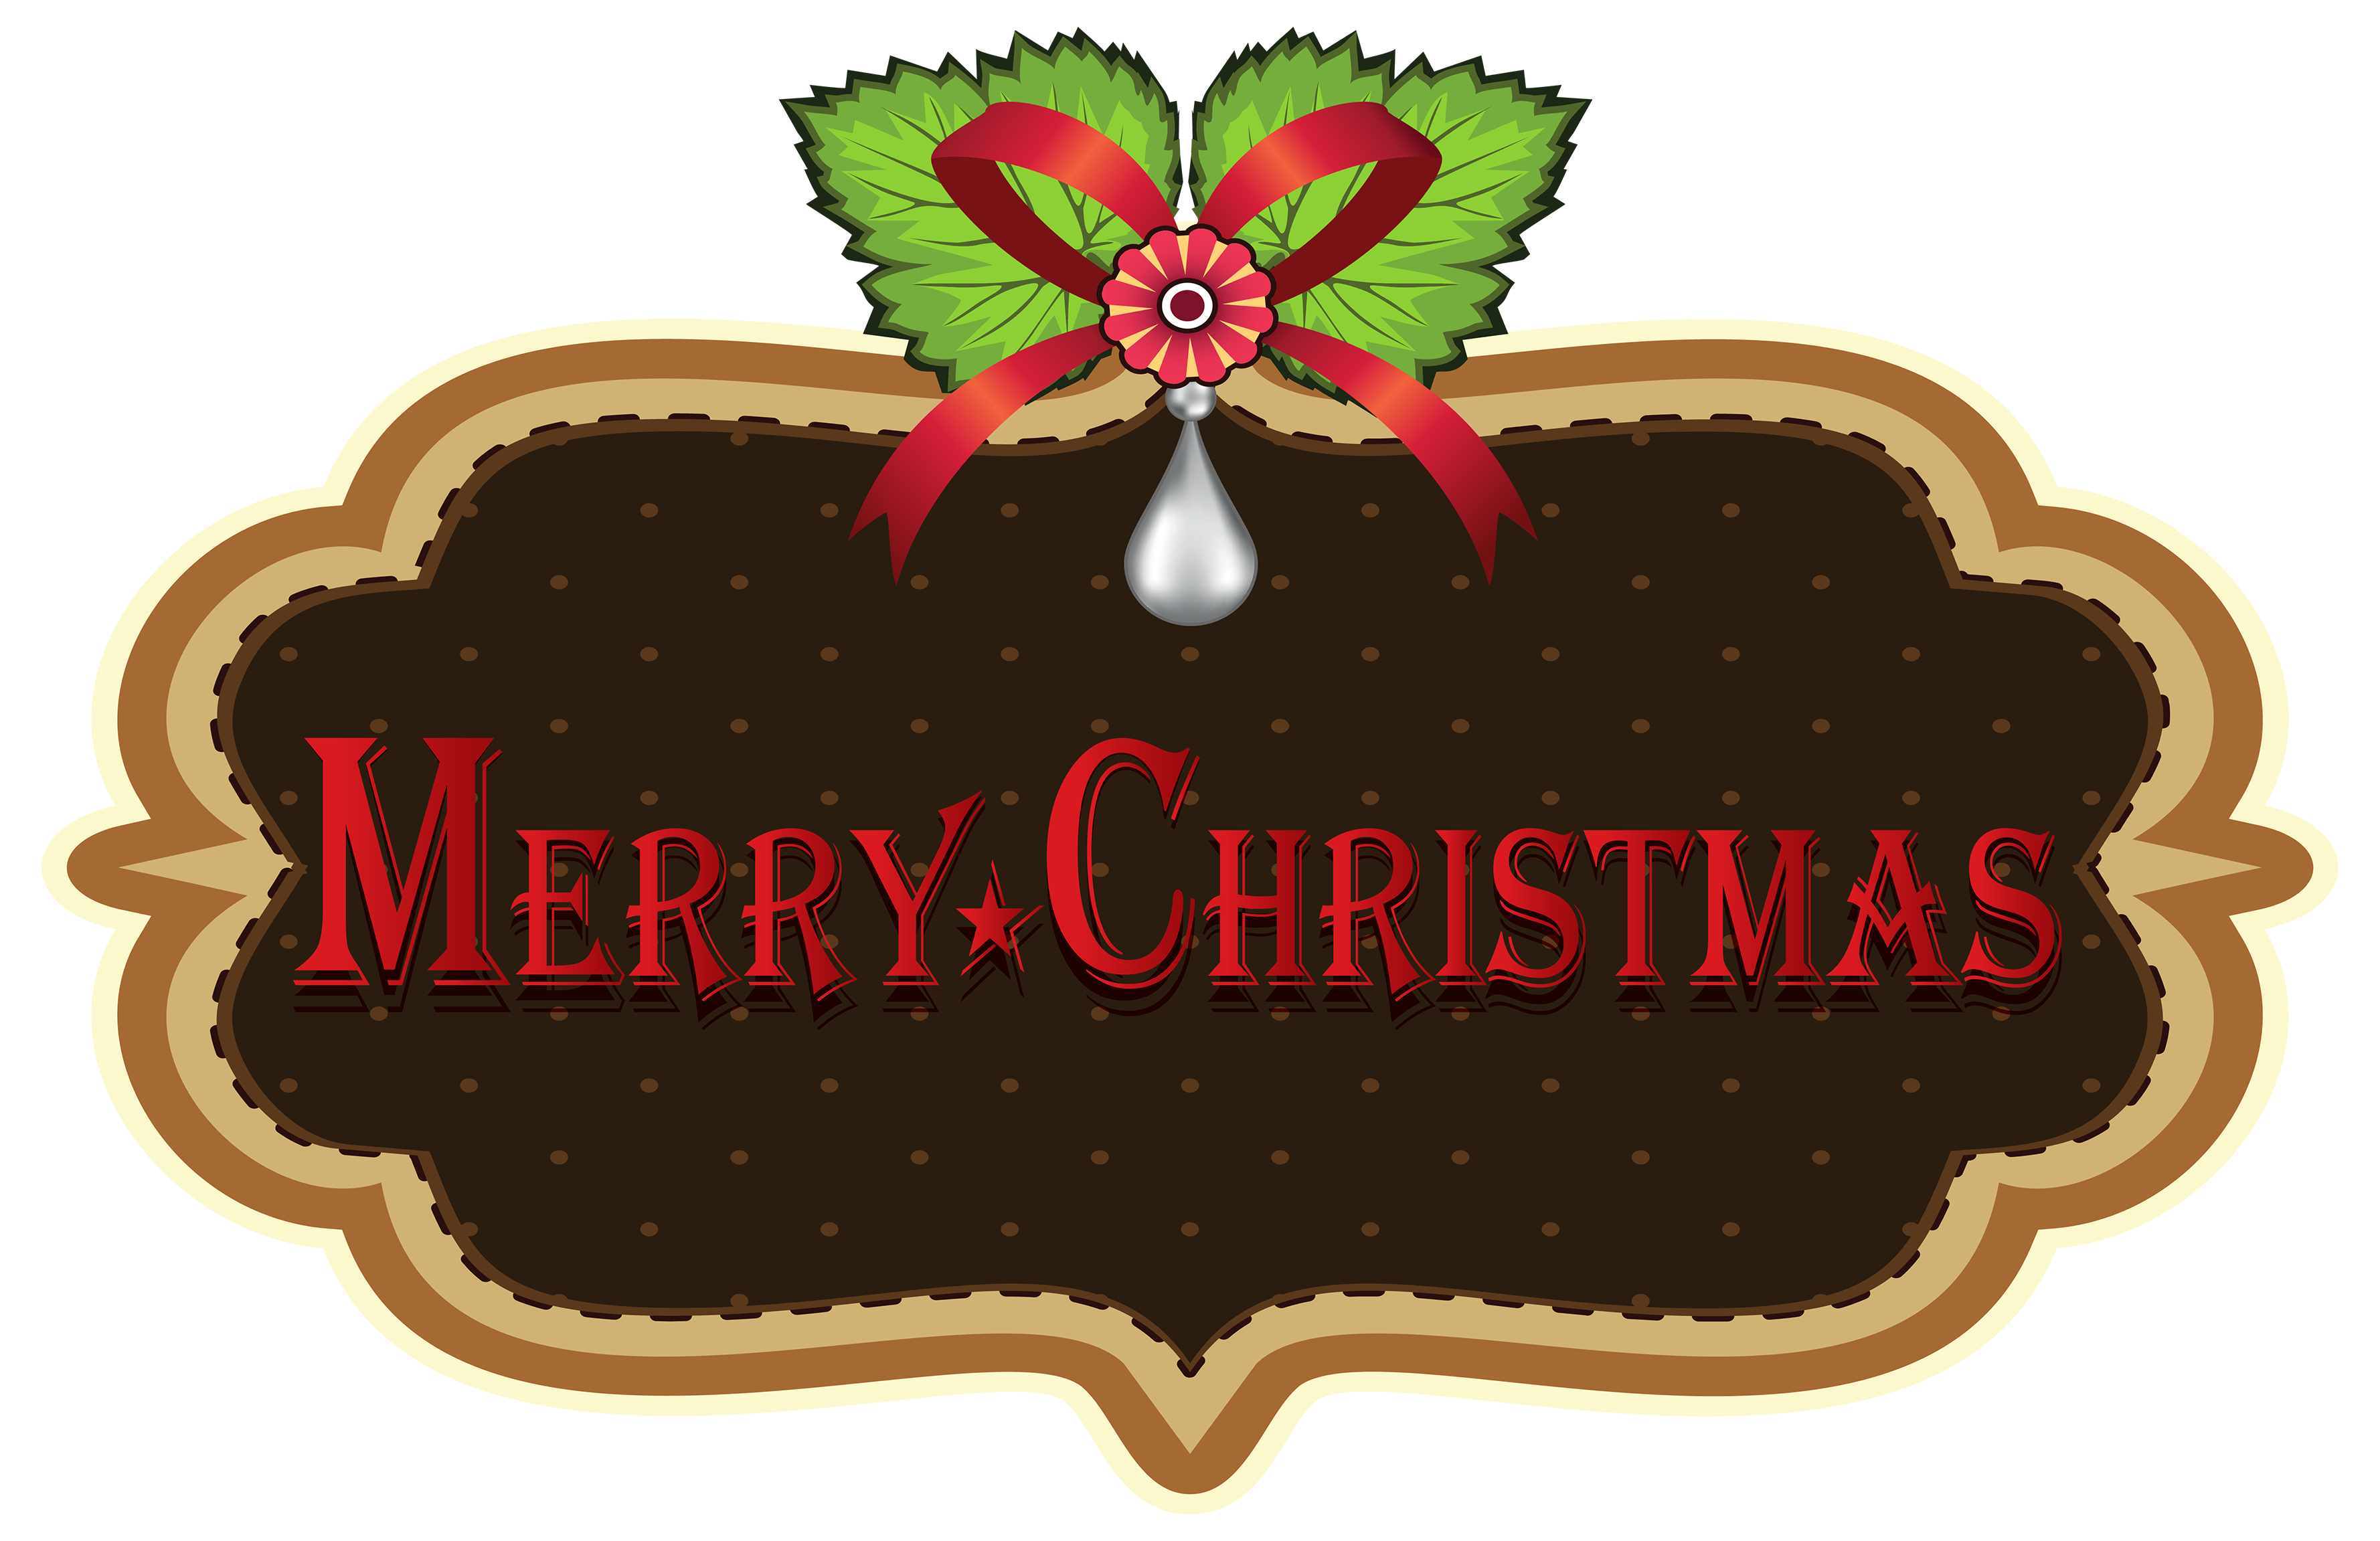 Christmas label png. Merry clipart best web